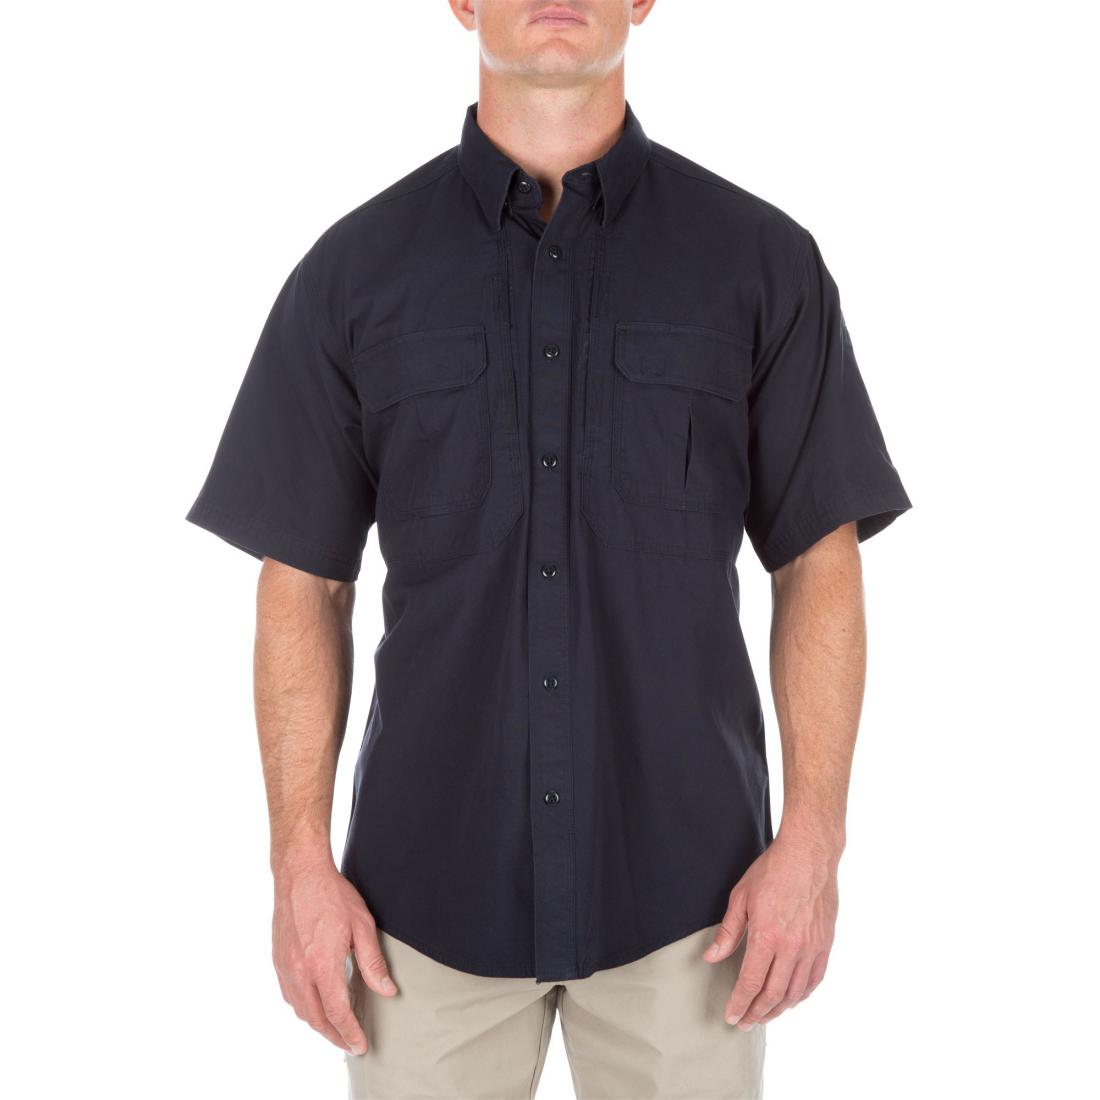 5.11 Tactical 71152 Men Tactical Short Sleeve Shirt Fire Navy